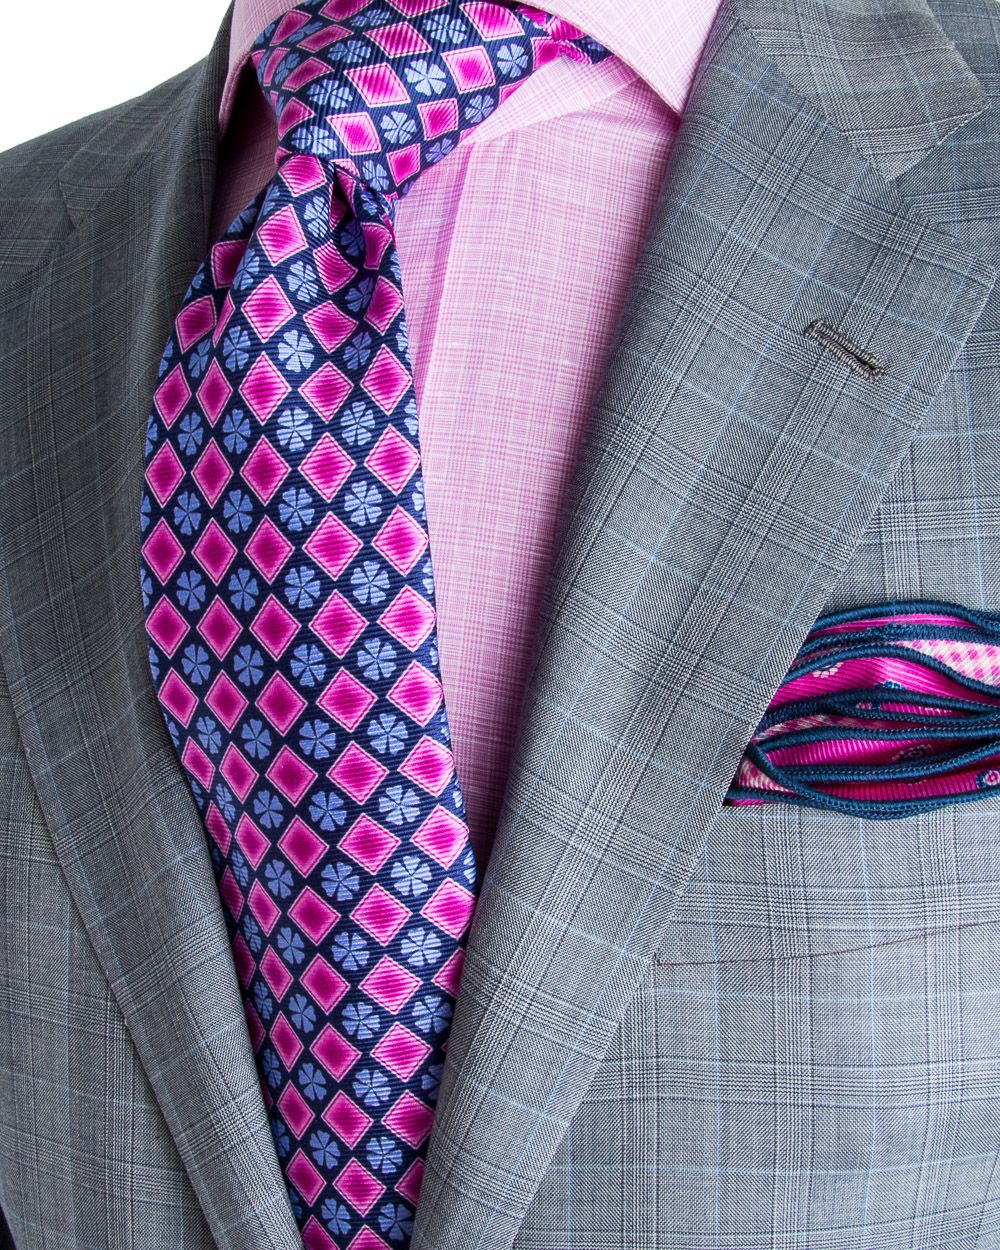 6fb5518ad1af Kiton | Grey Plaid Suit | Apparel | Men's. Find this Pin and more on Ties & Pocket  Squares ...